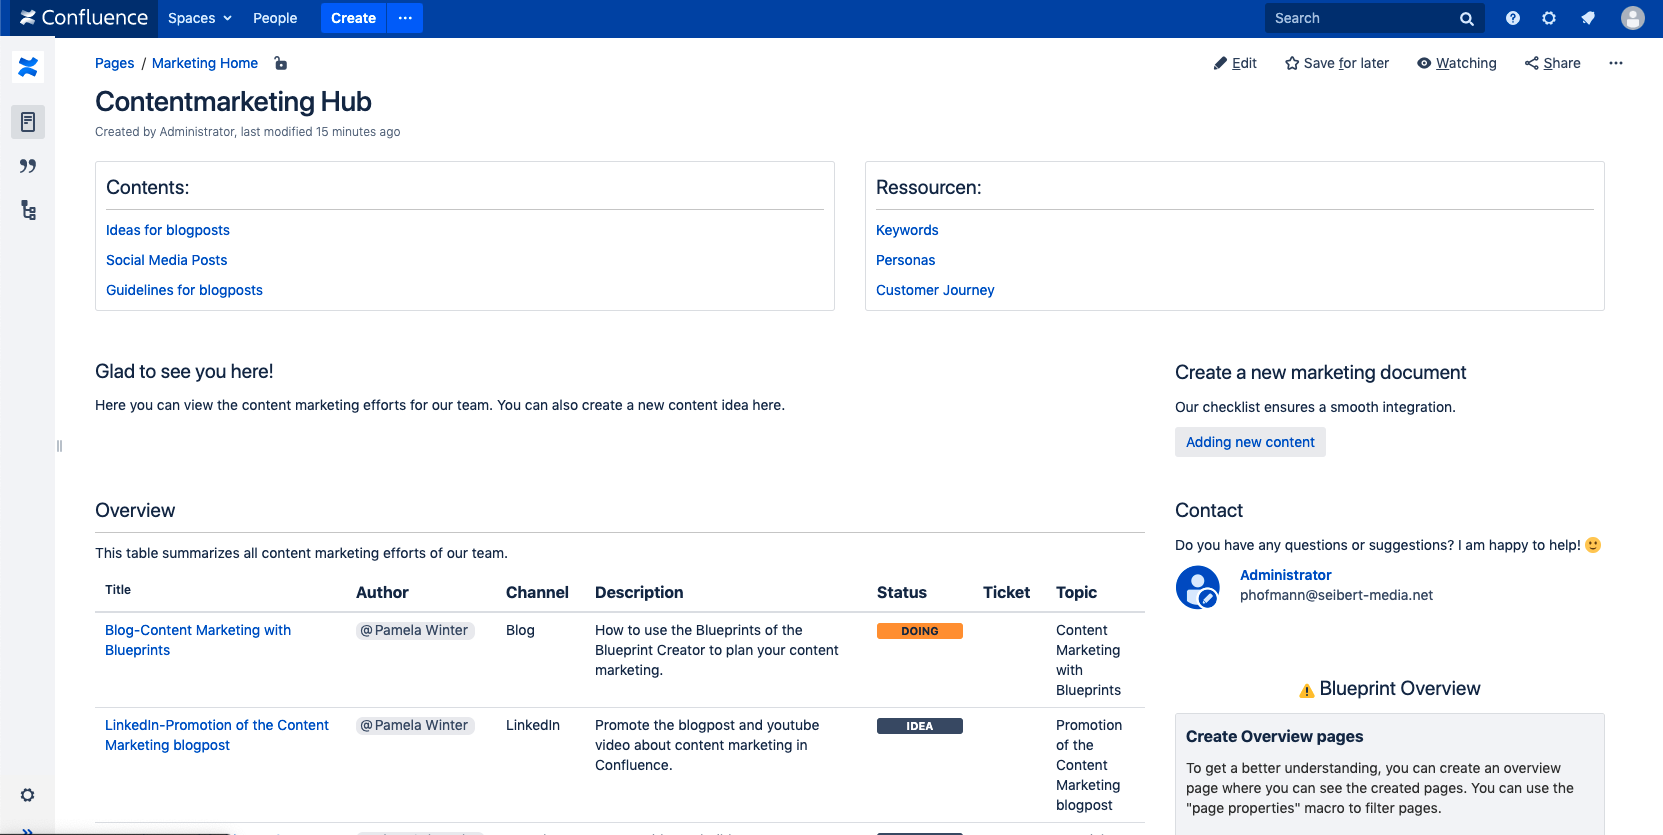 Content Marketing with Blueprint Creator in Confluence